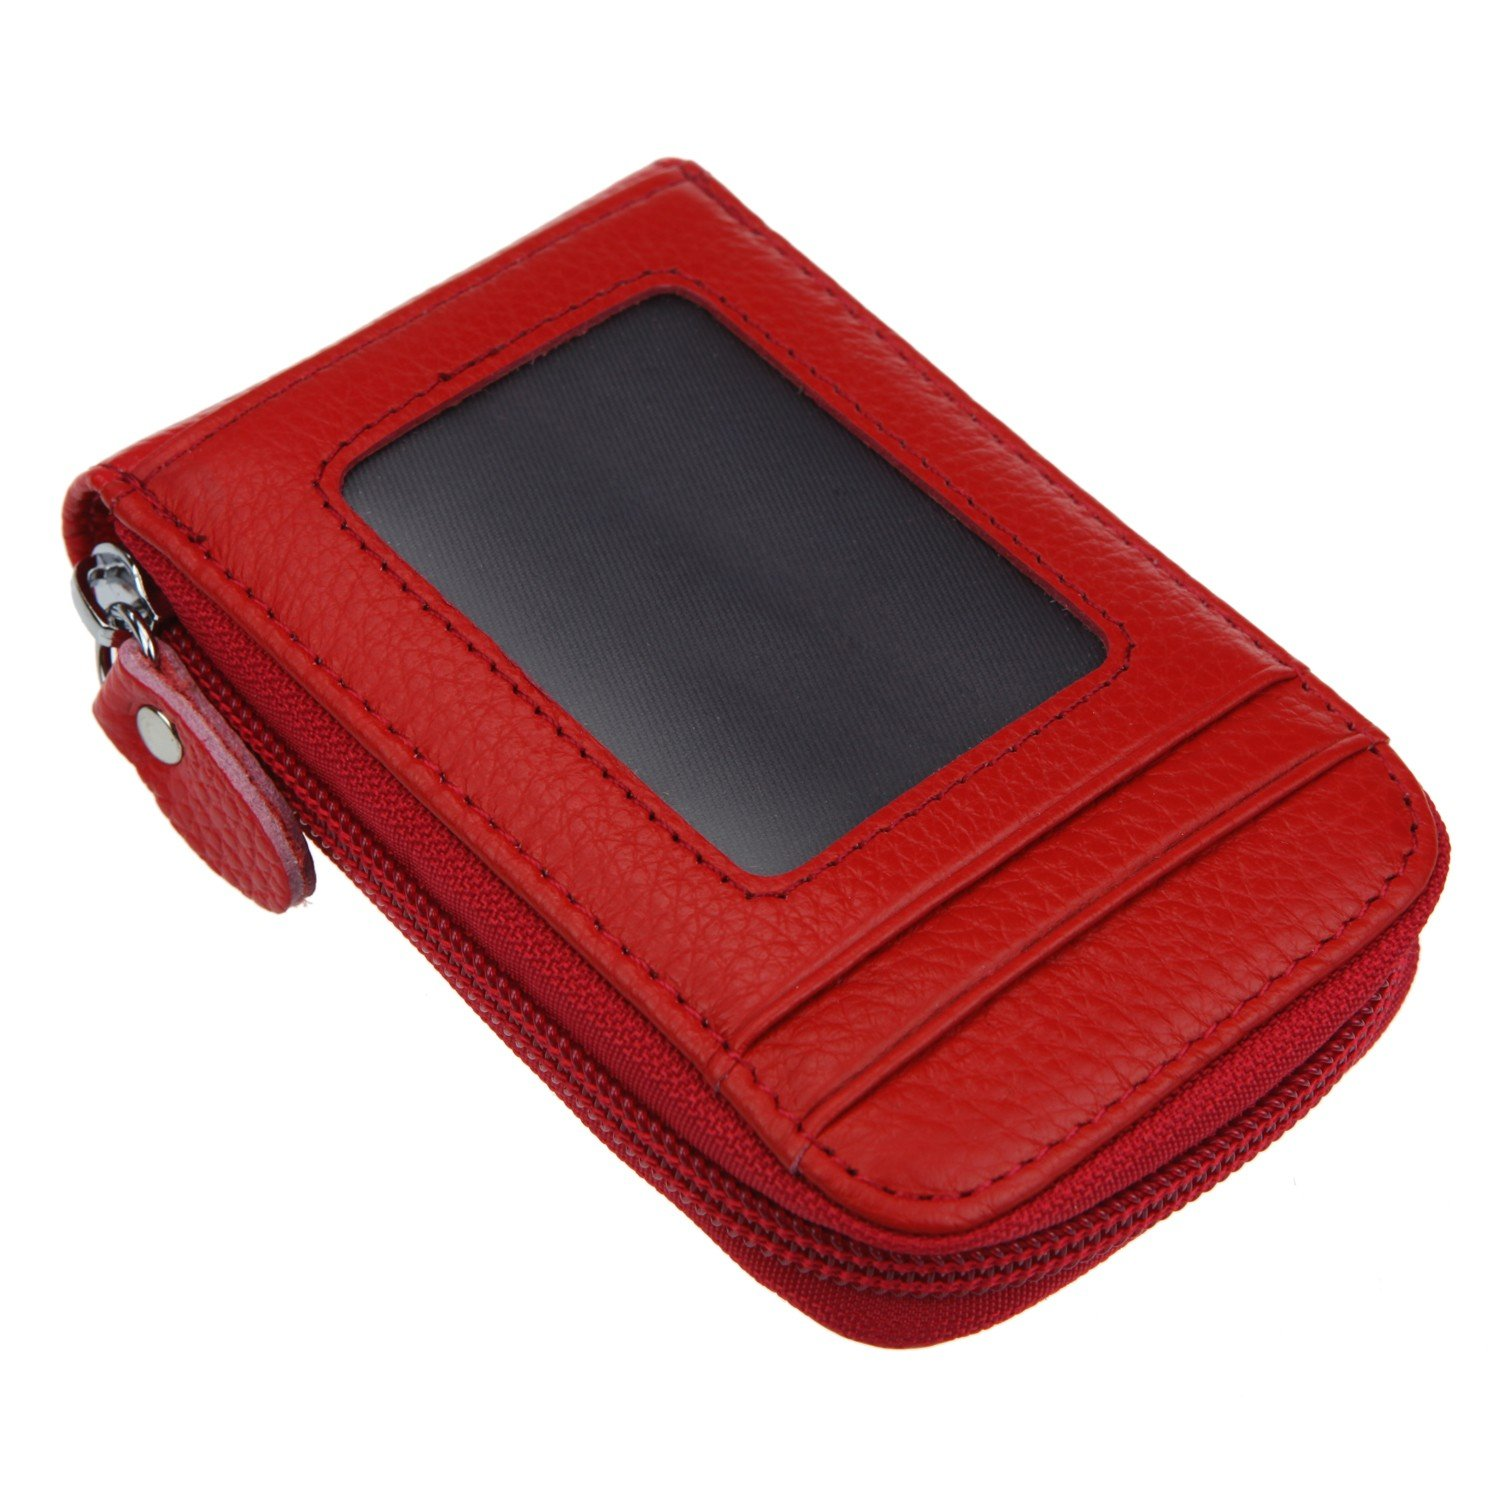 RFID Leather Mini Credit Card Case Organizer Compact Wallet with ID Window (Pruple) CC15083D